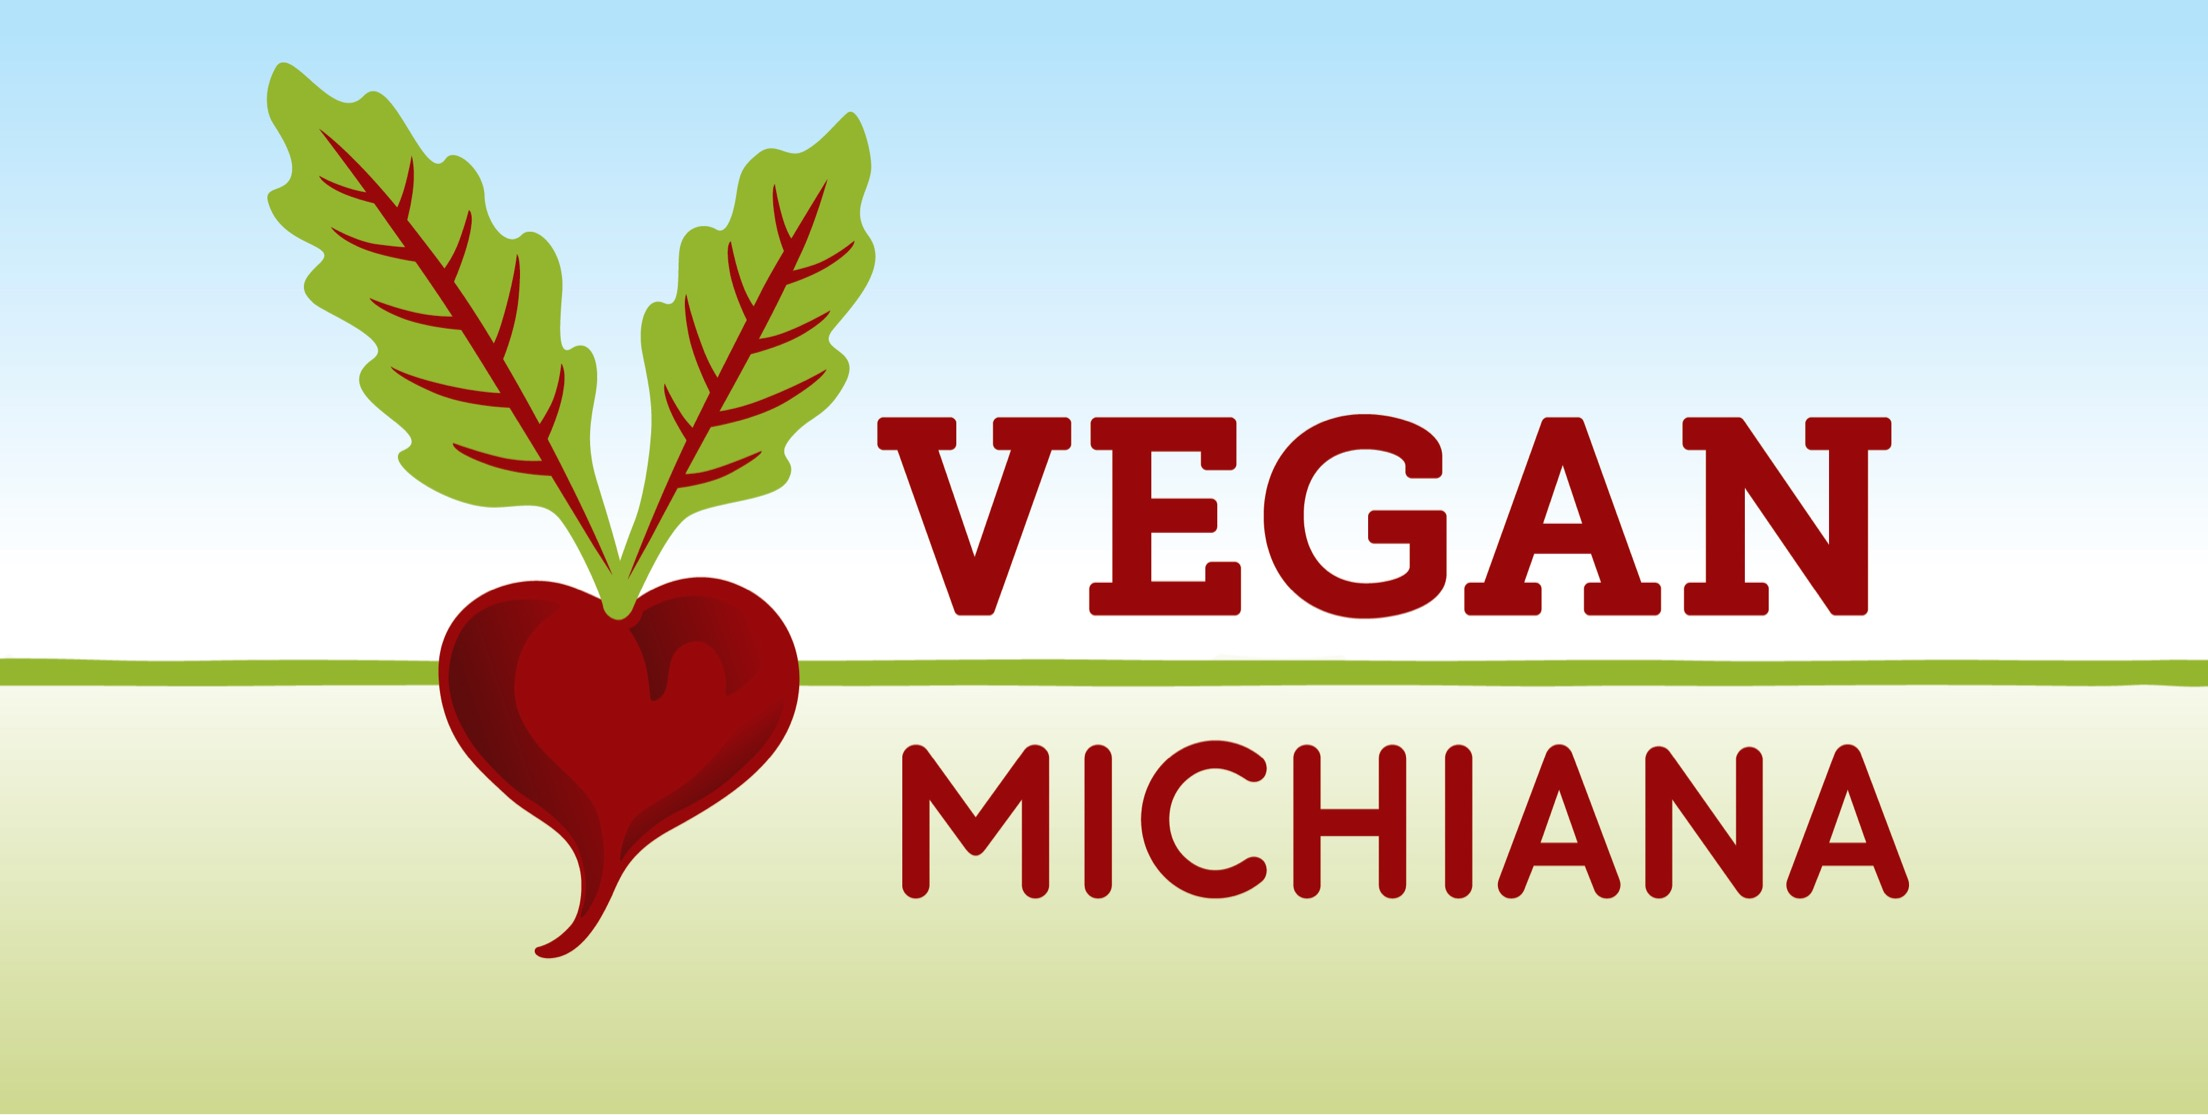 Vegan Michiana